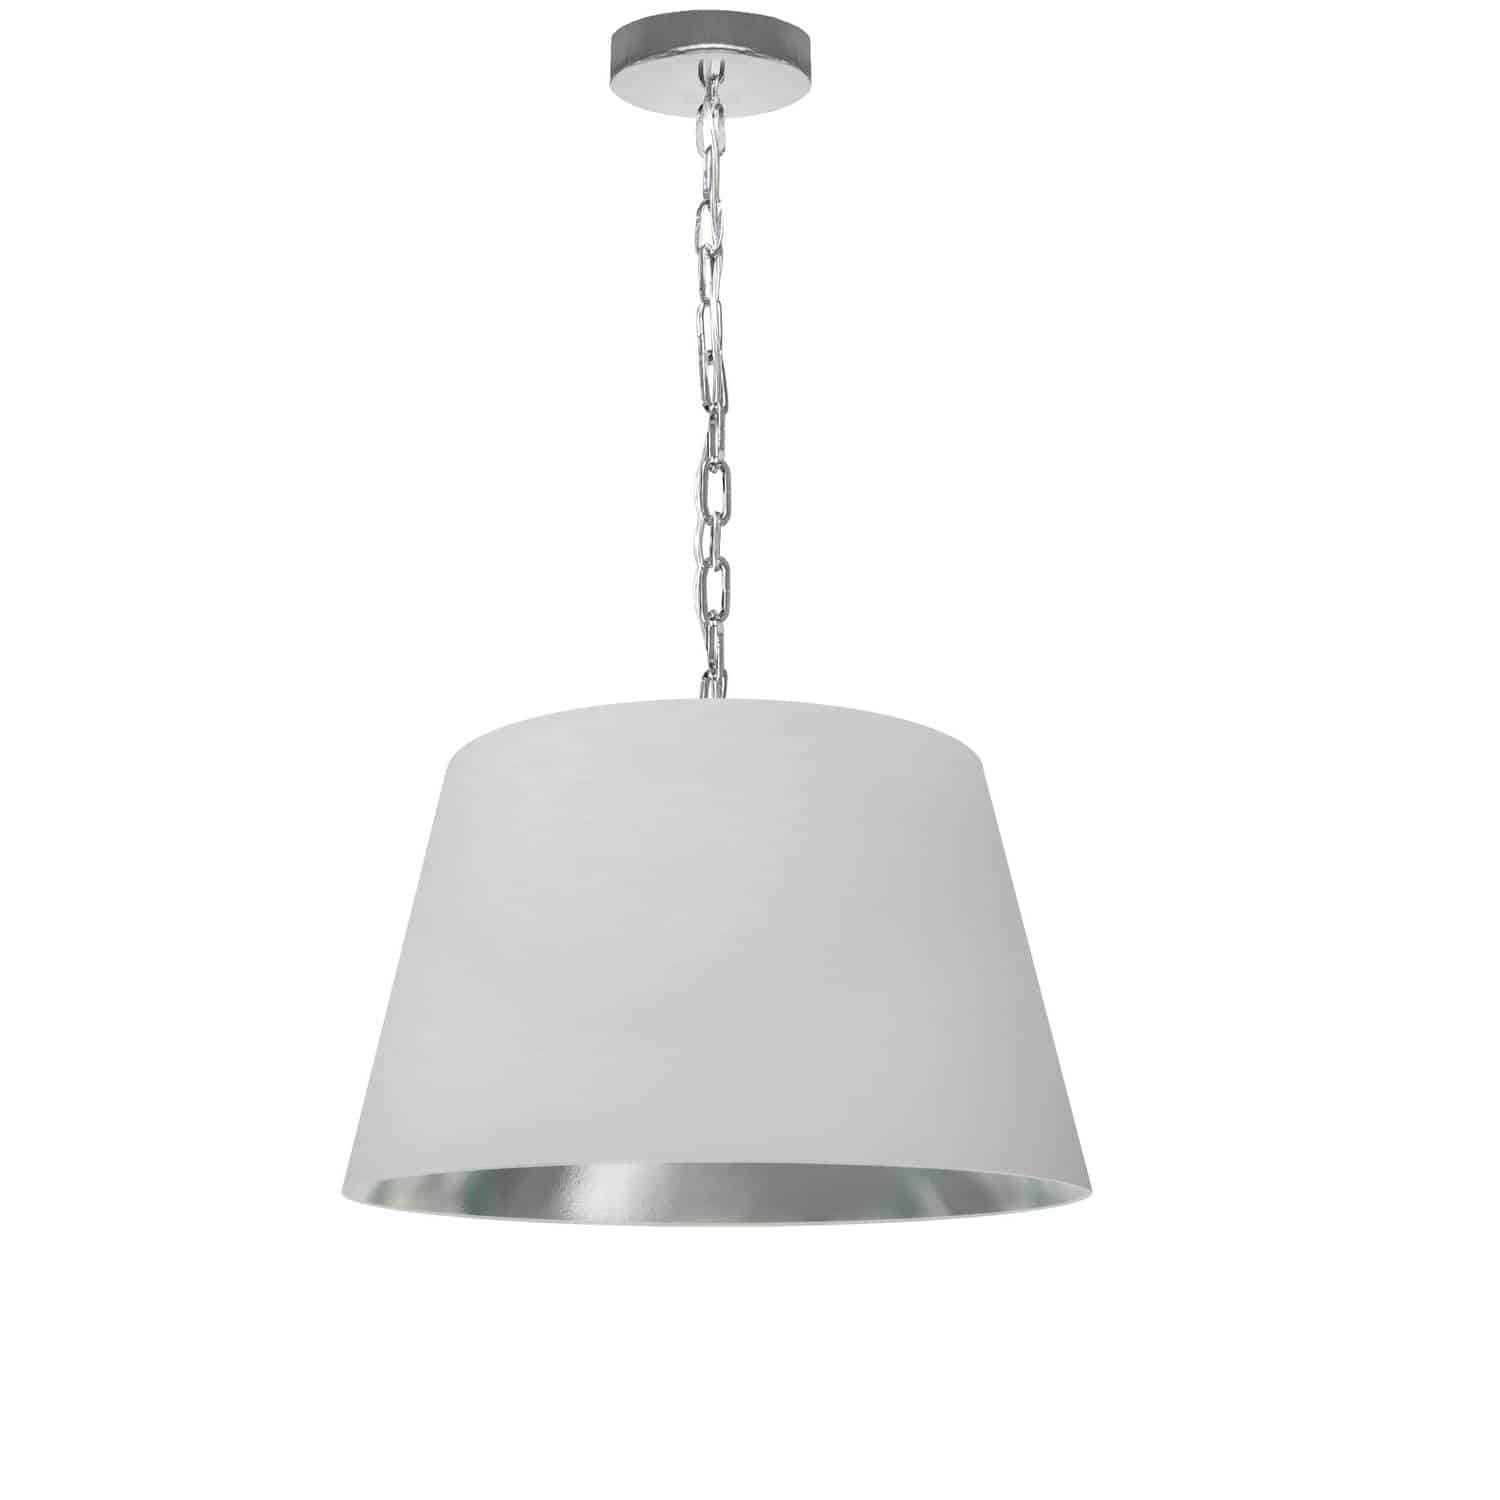 1 Light Brynn Small Pendant, White/Silver Shade, Polished Chrome